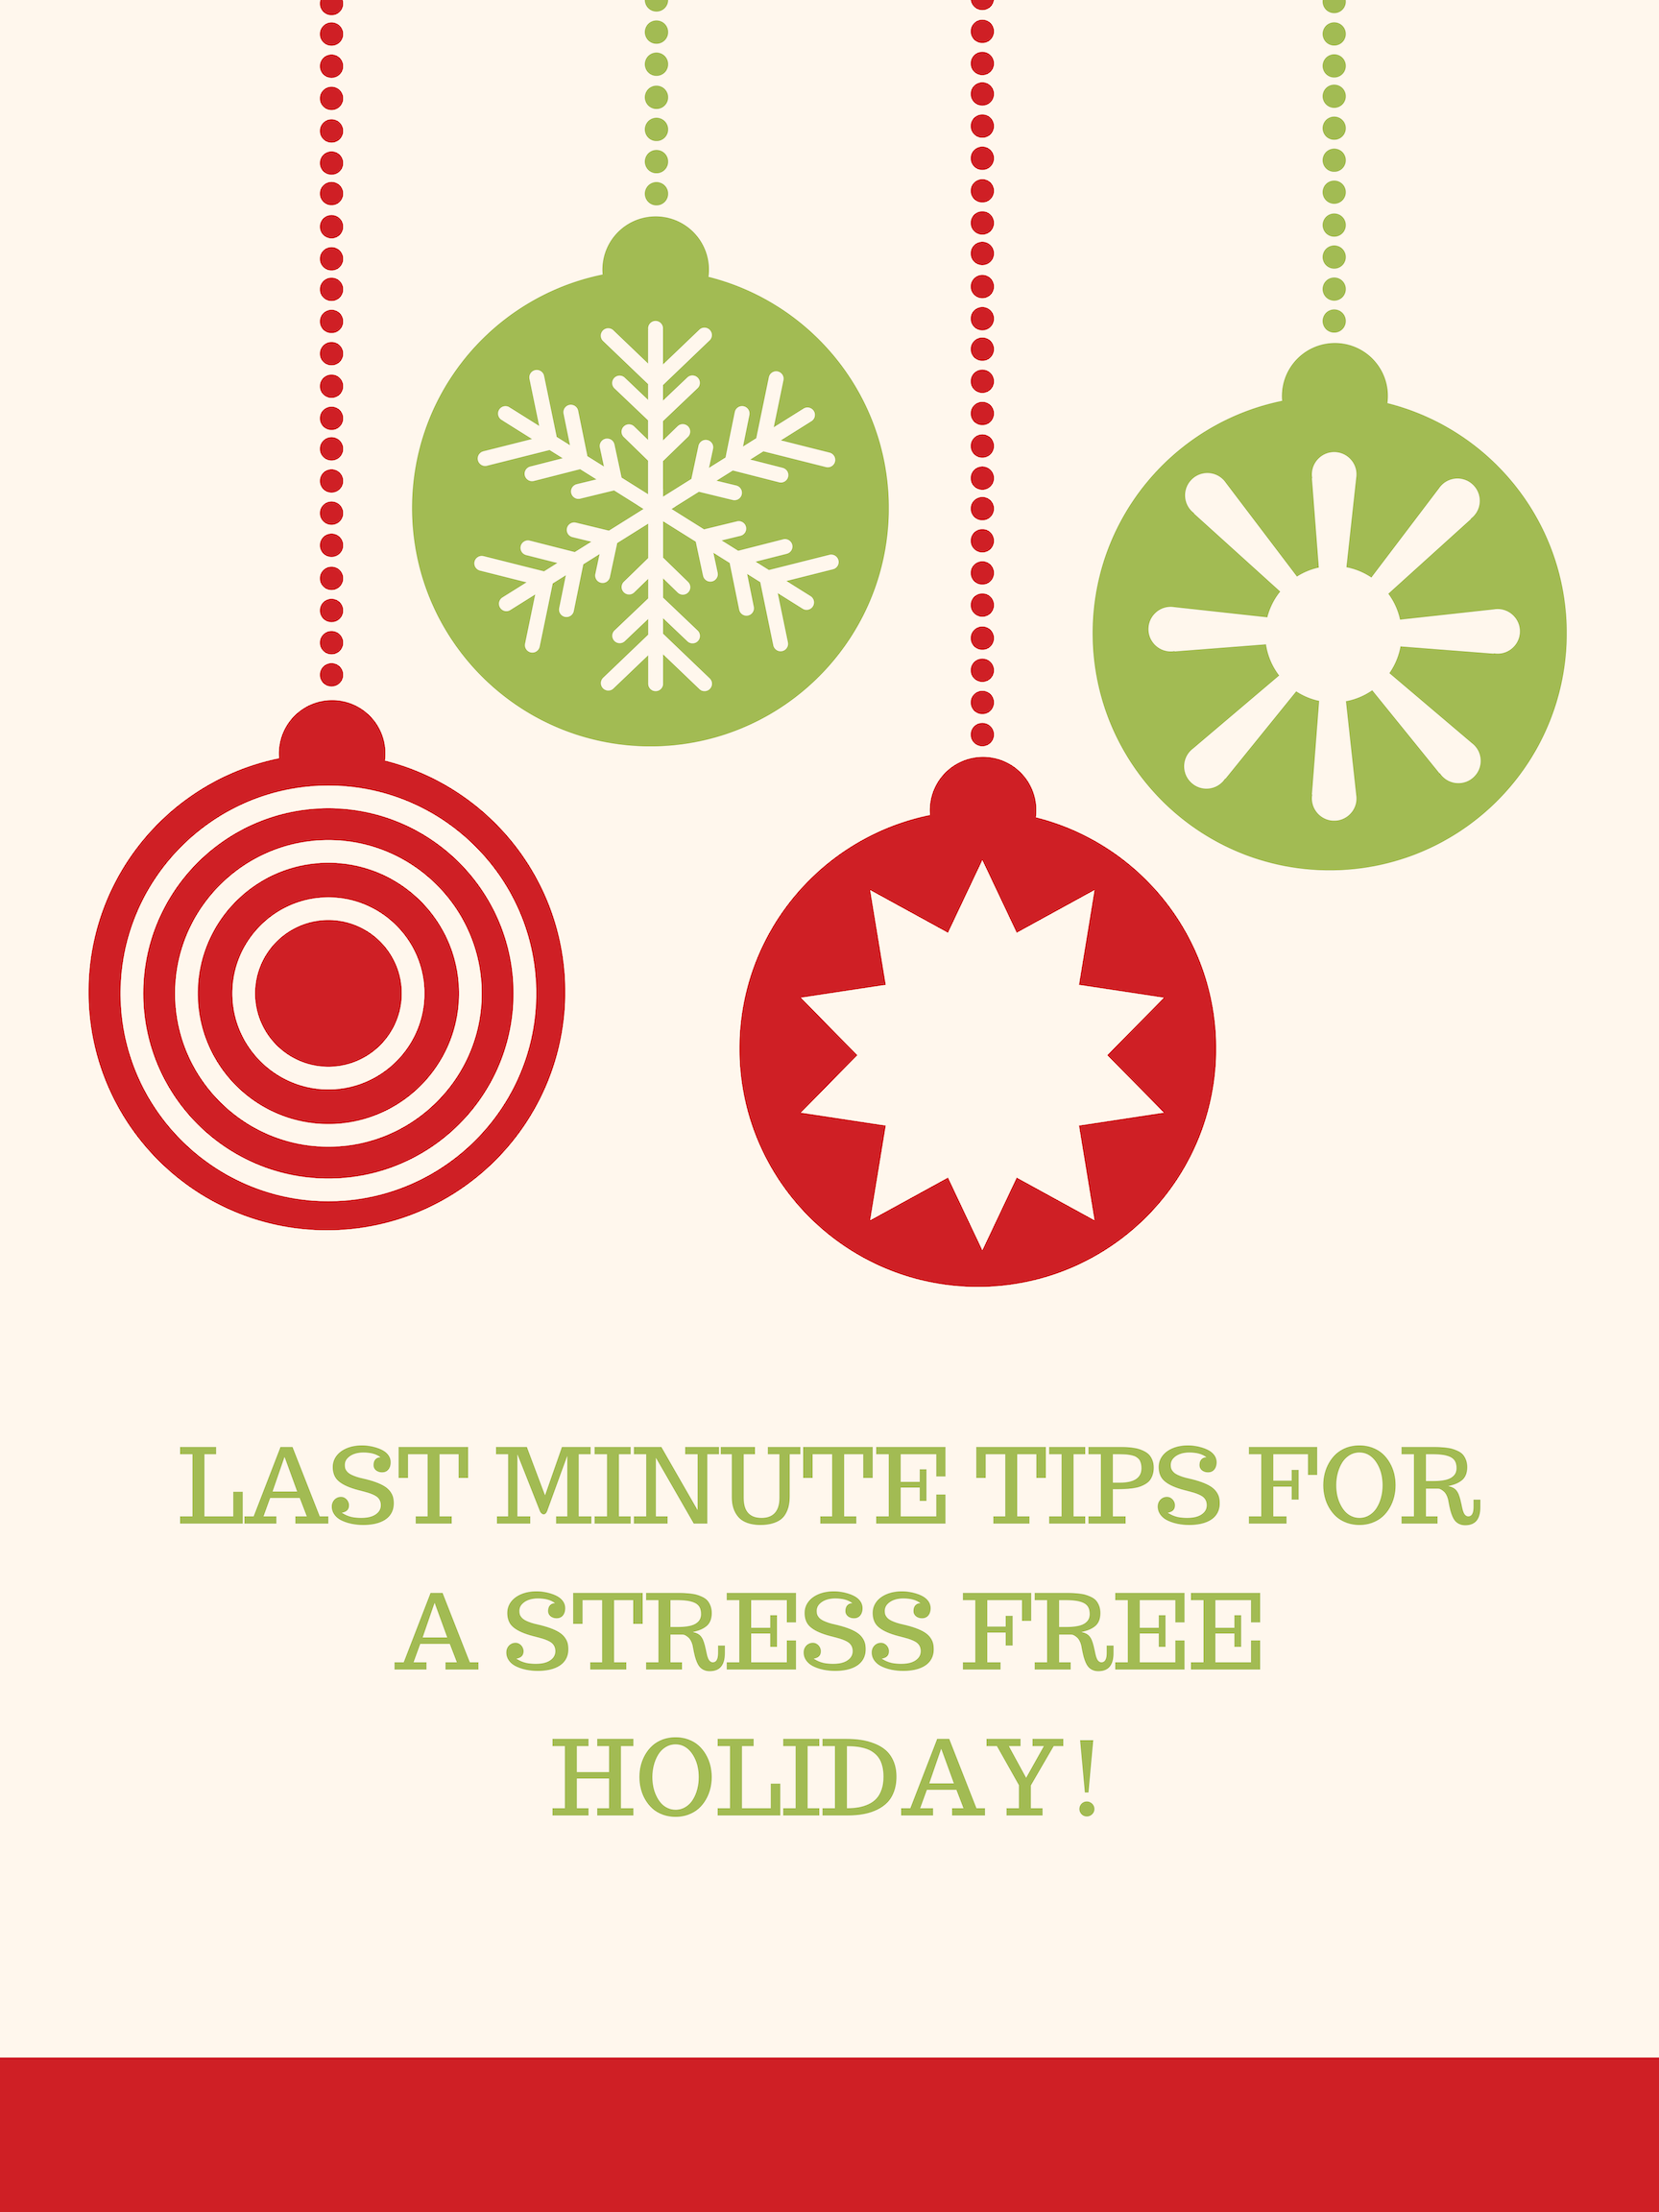 Tips to relieve holiday stress!